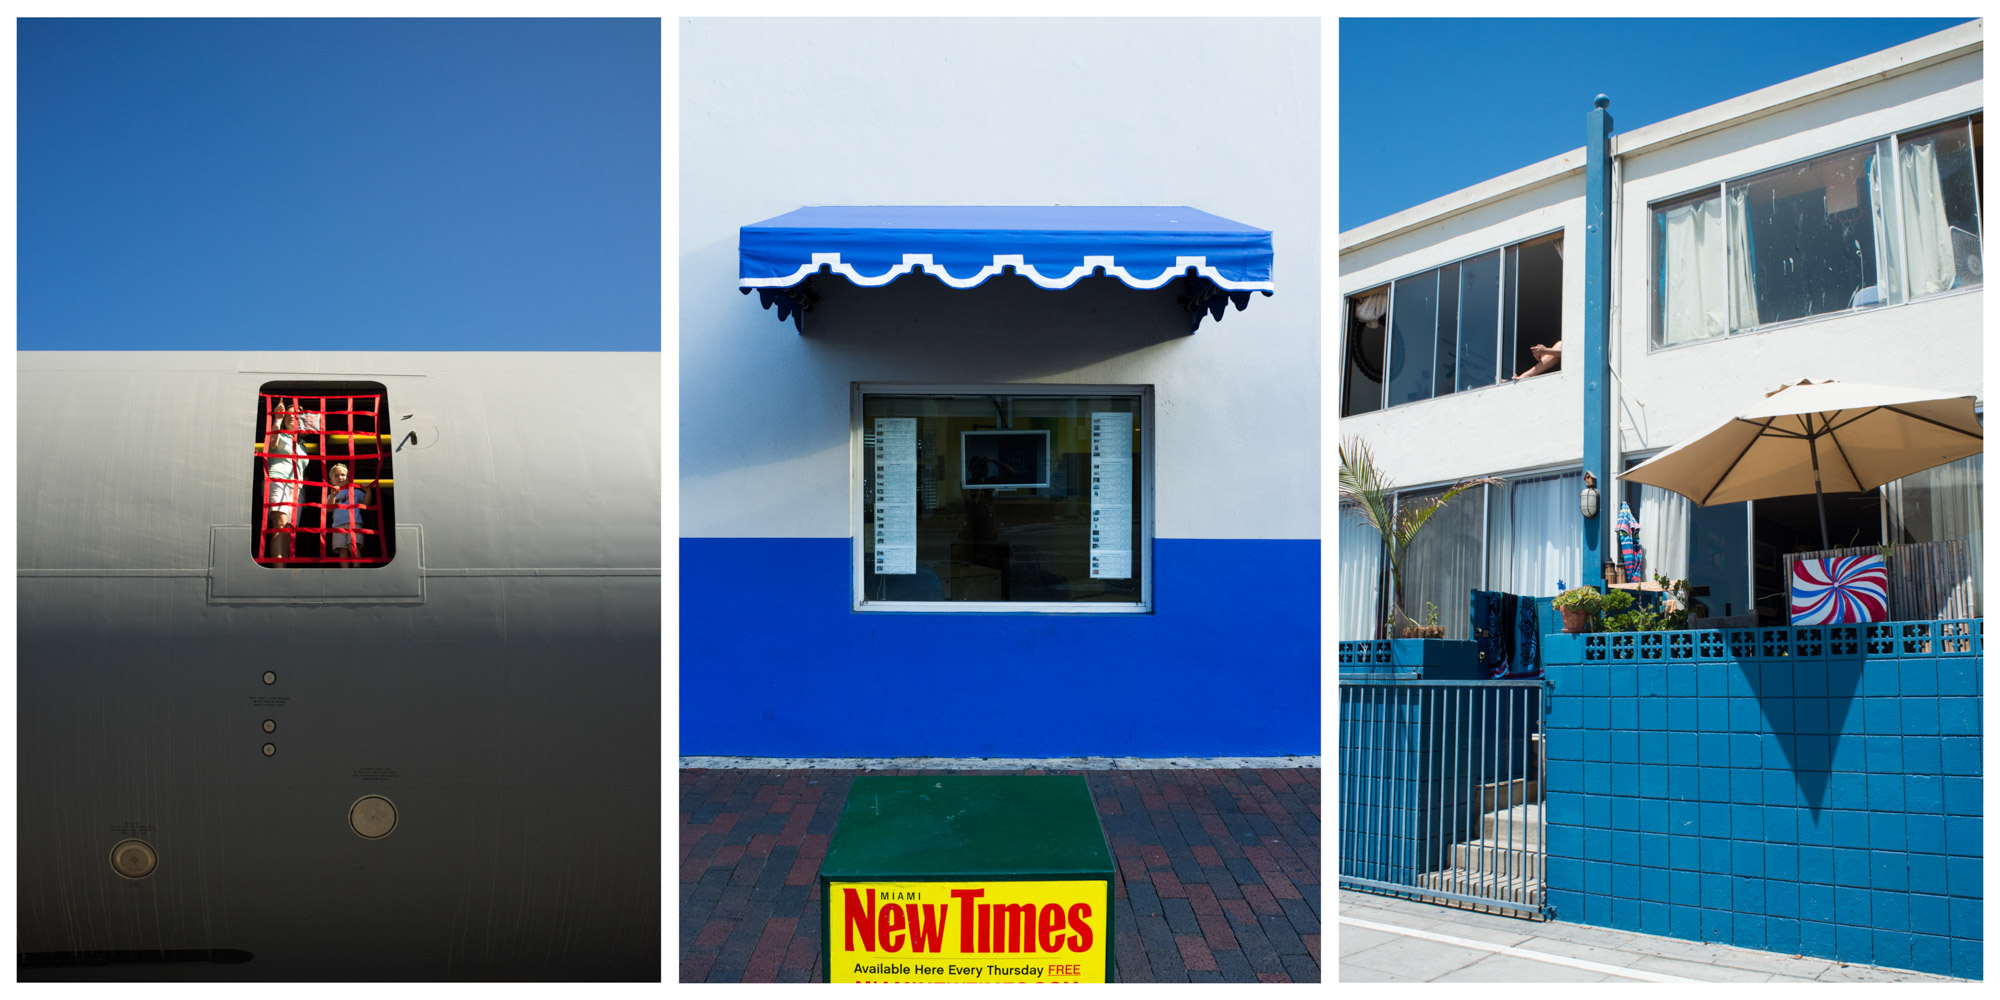 Multiple Locations (From Left to Right)   Homestead, FL - 2012  Coral Gables, FL - 2013  Venice Beach, CA - 2014